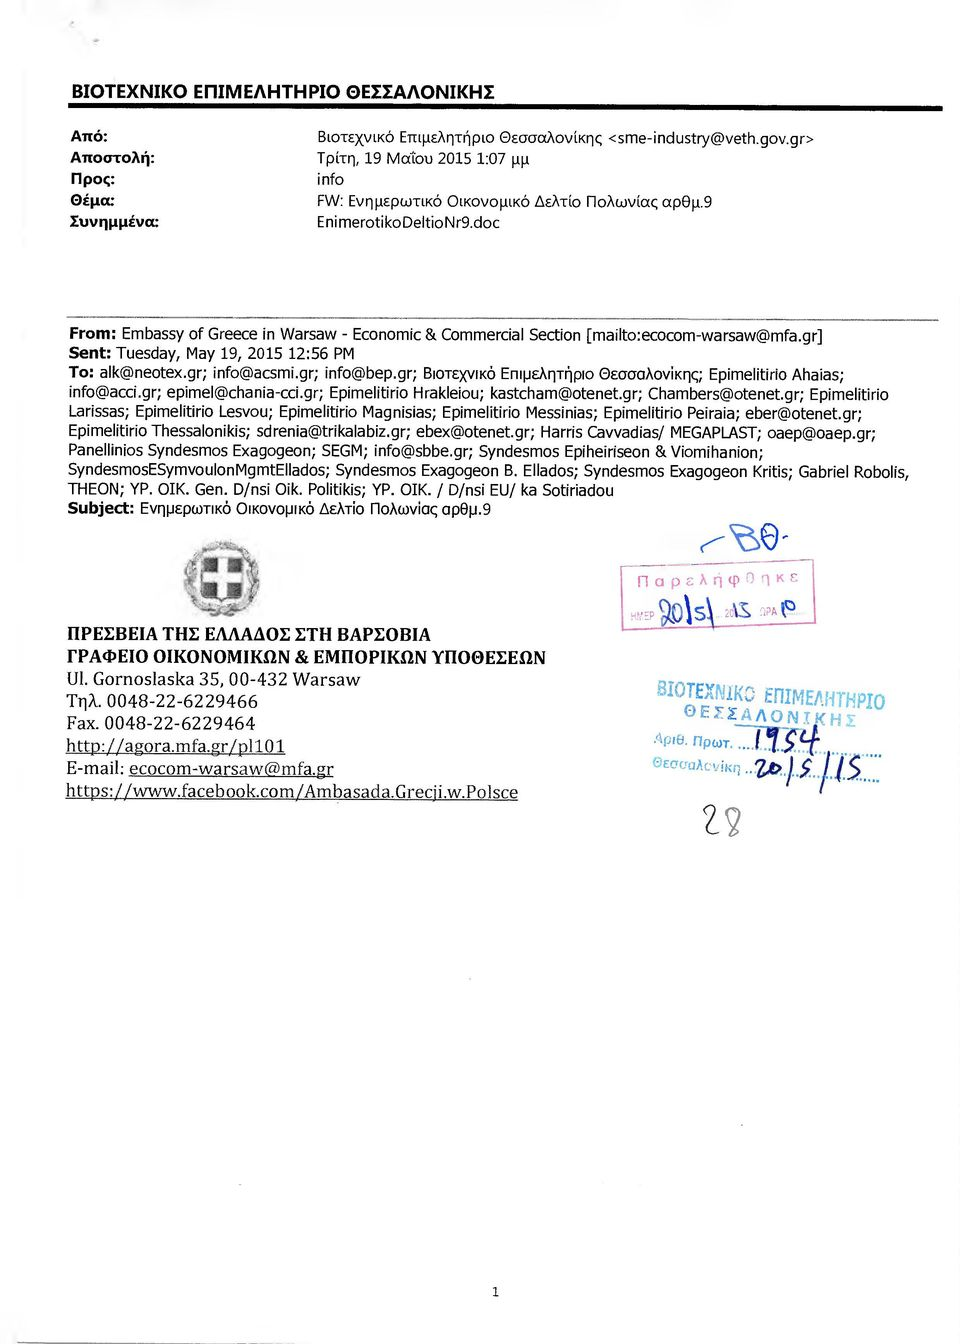 doc From: Embassy ο Greece ί η Warsaw - Econom ίc & Commercίal Section [mailto:ecocom-warsaw@mfa.gr] Sent: Tuesday, Μαγ 19, 2015 12:56 ΡΜ Το: alk@neotex.gr; ί ηfο@αcsm ί.gr; ί ηfο@bep.